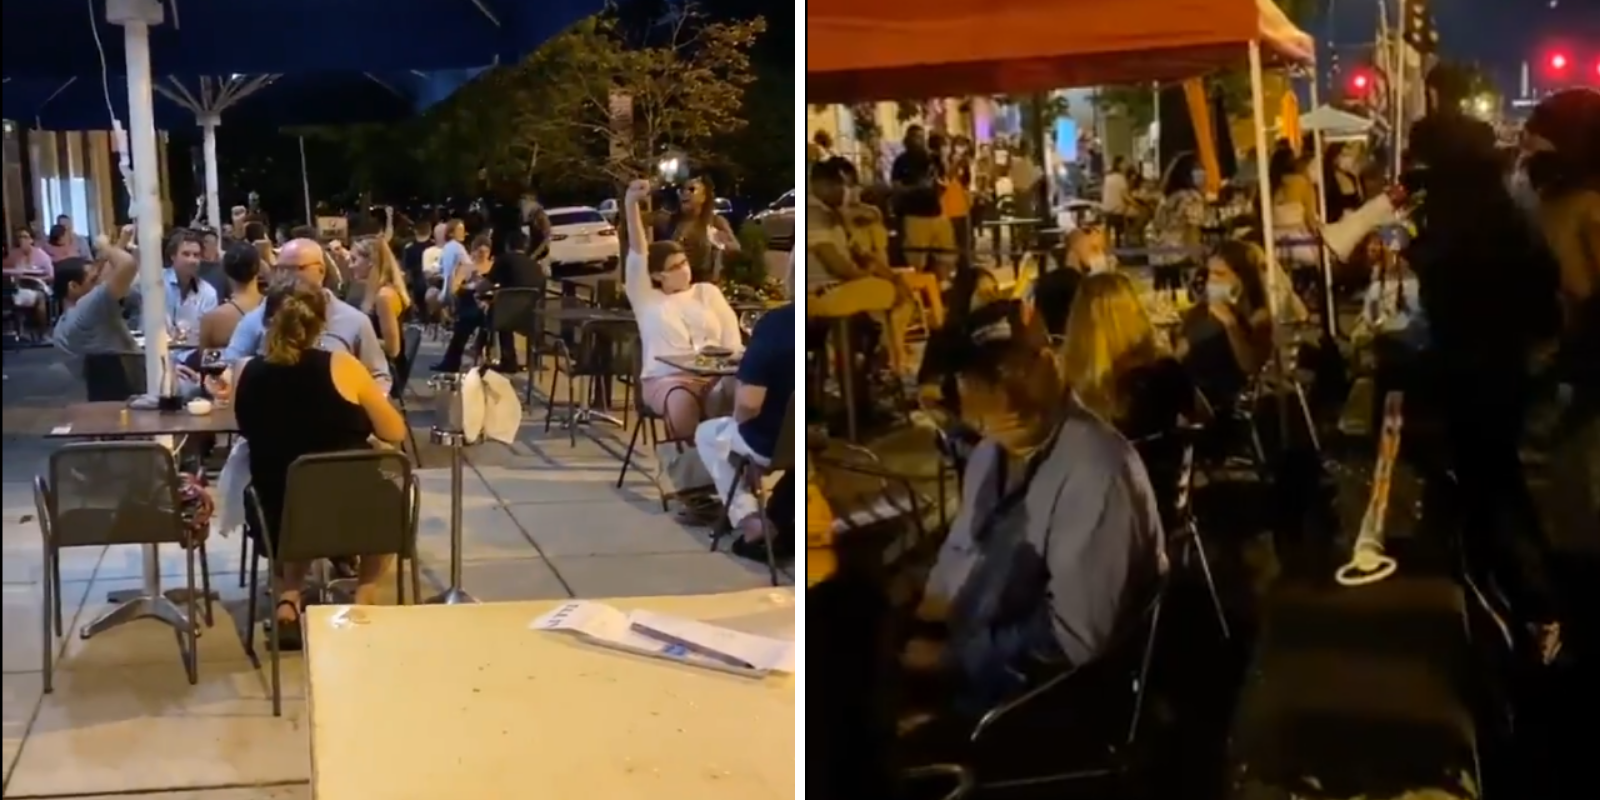 WATCH: BLM activists harass and berate diners at DC restaurants